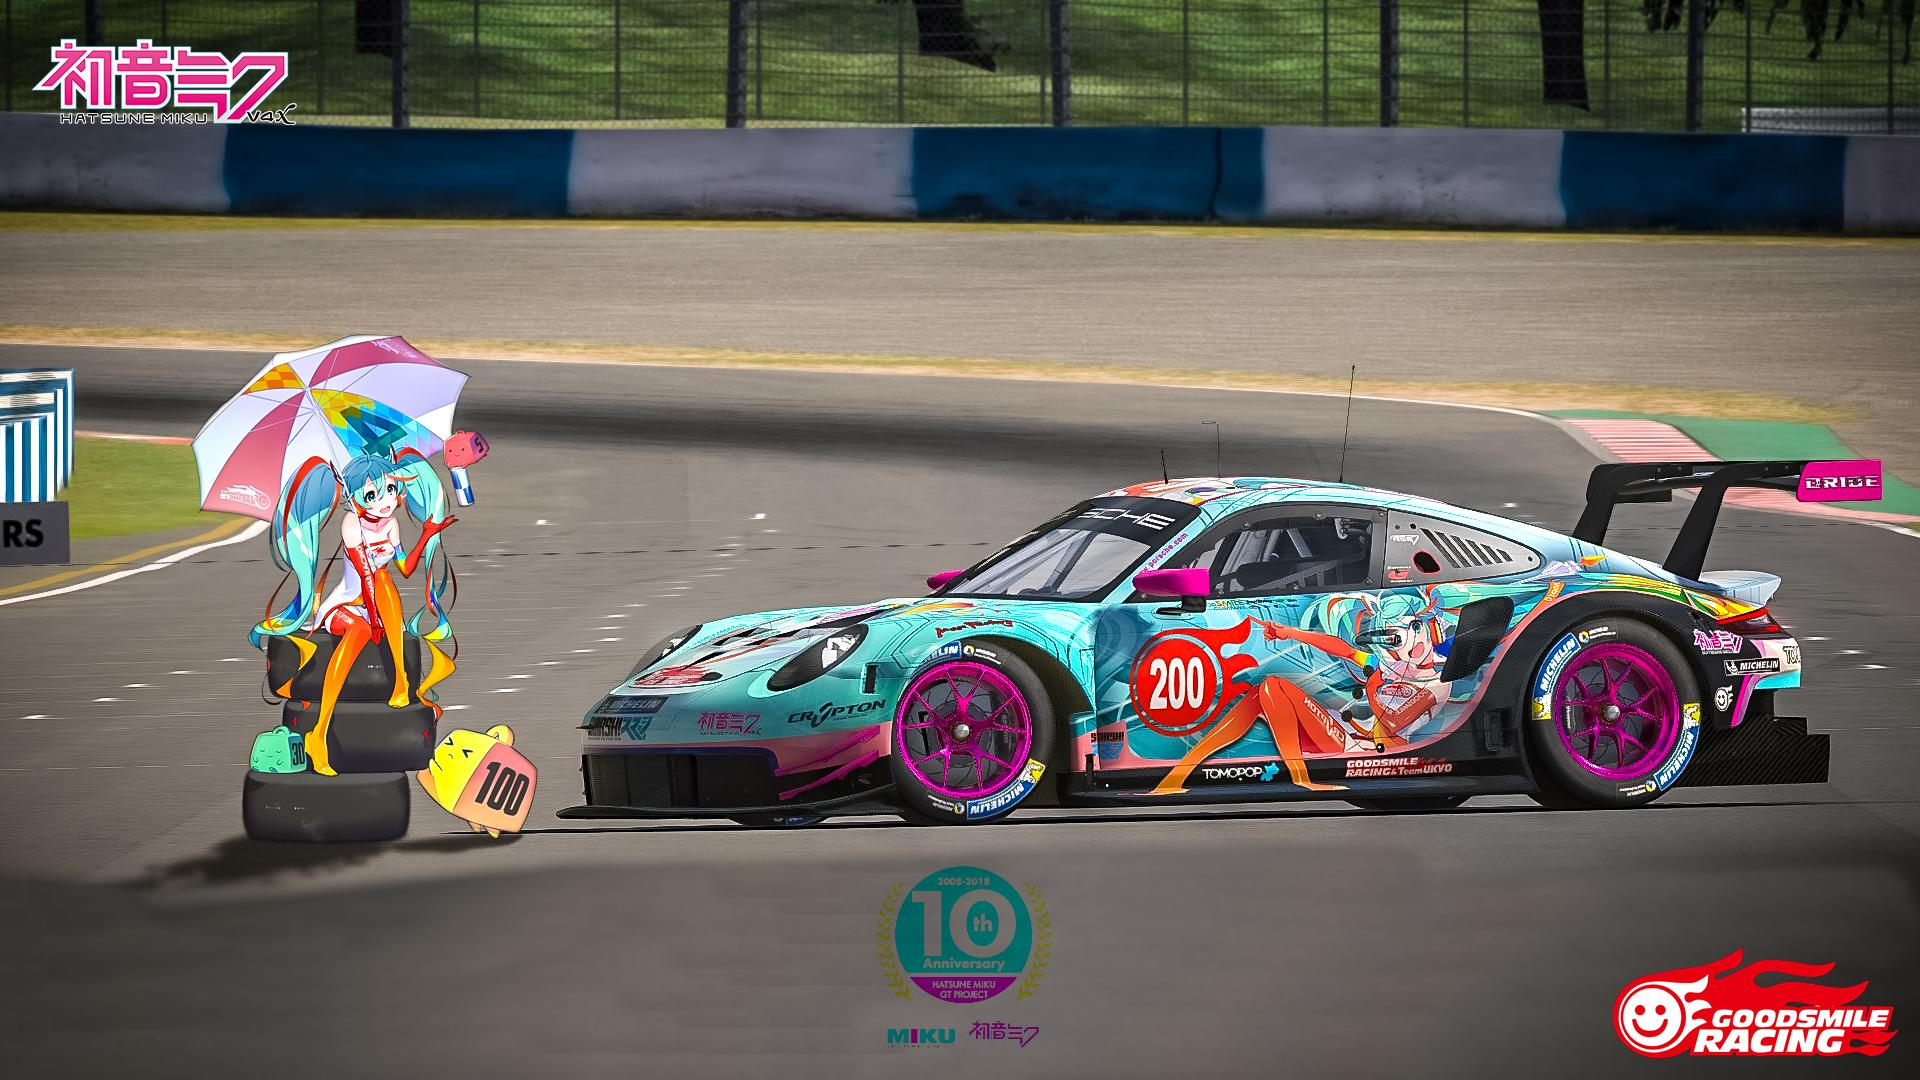 Preview of GoodSmile Racing by Paul Mansell